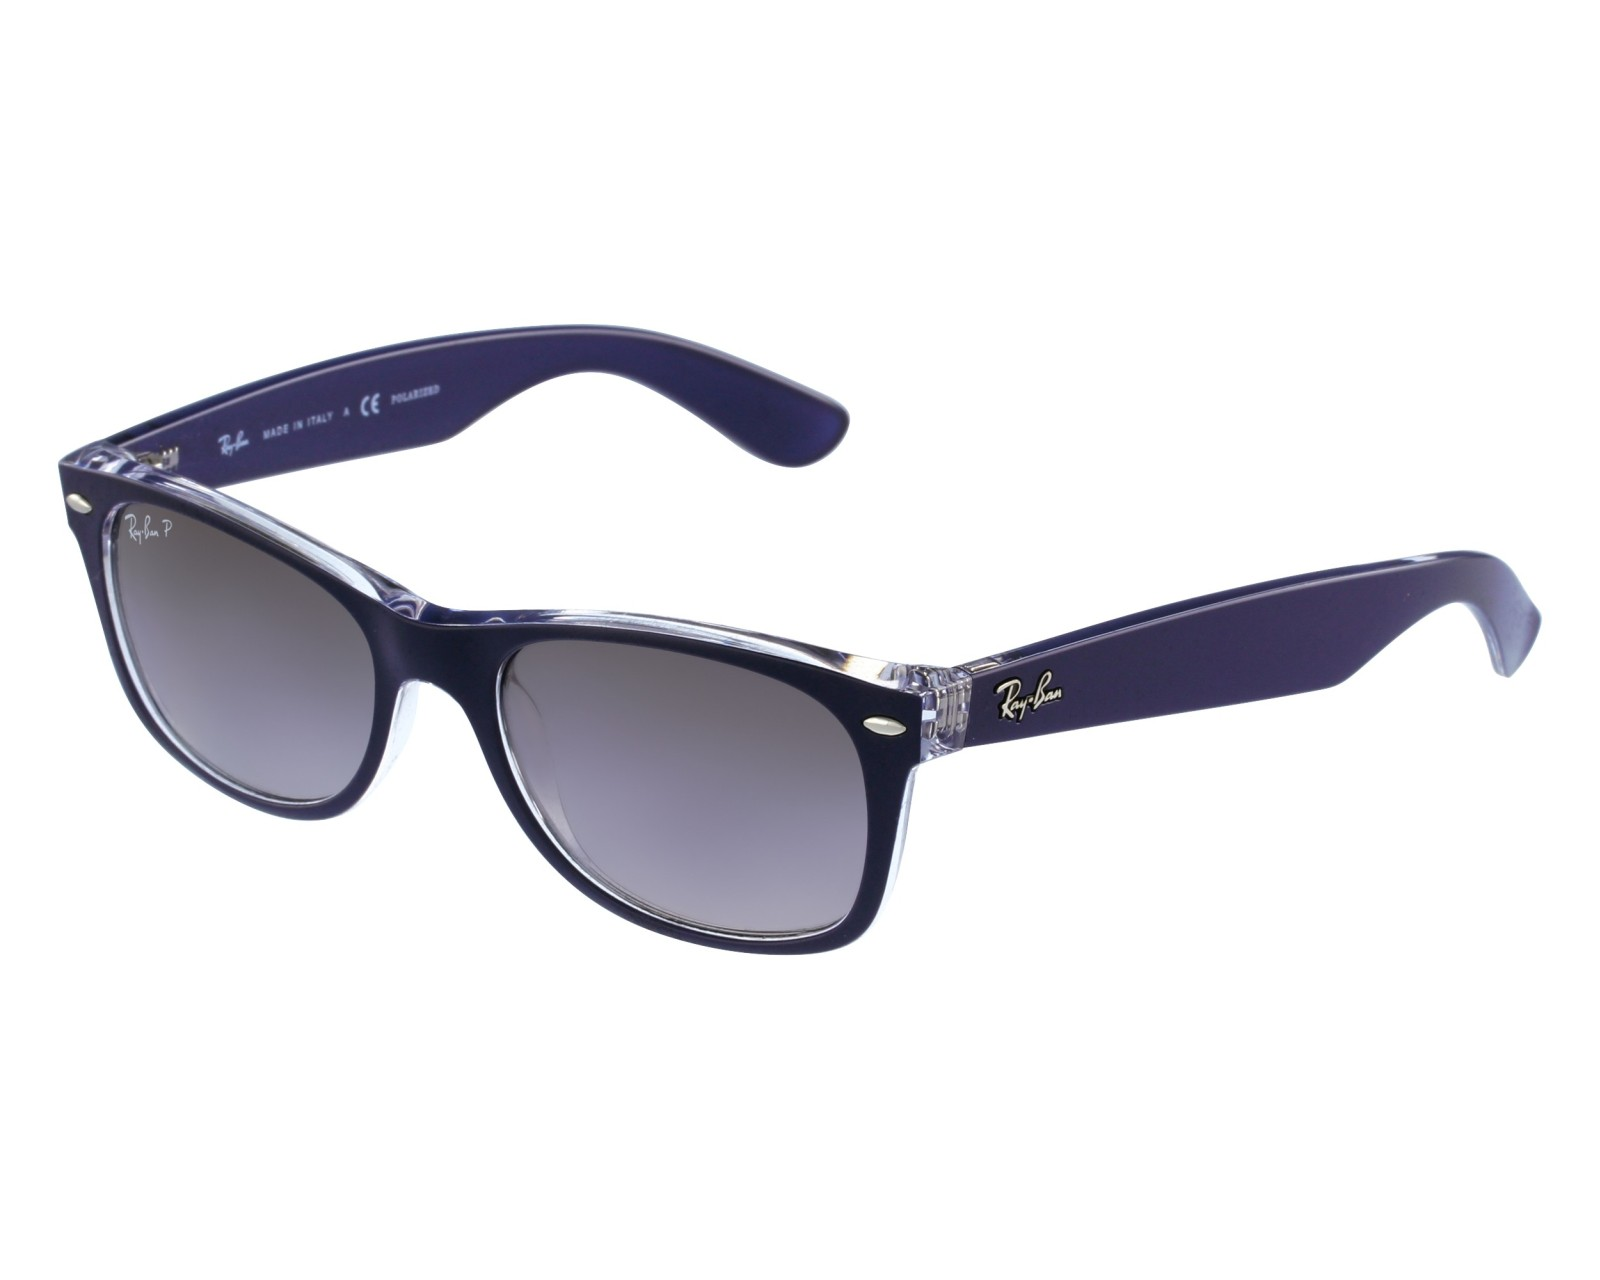 820cbaf1885a1 Sunglasses Ray-Ban RB-2132 6053M3 52-18 Blue front view